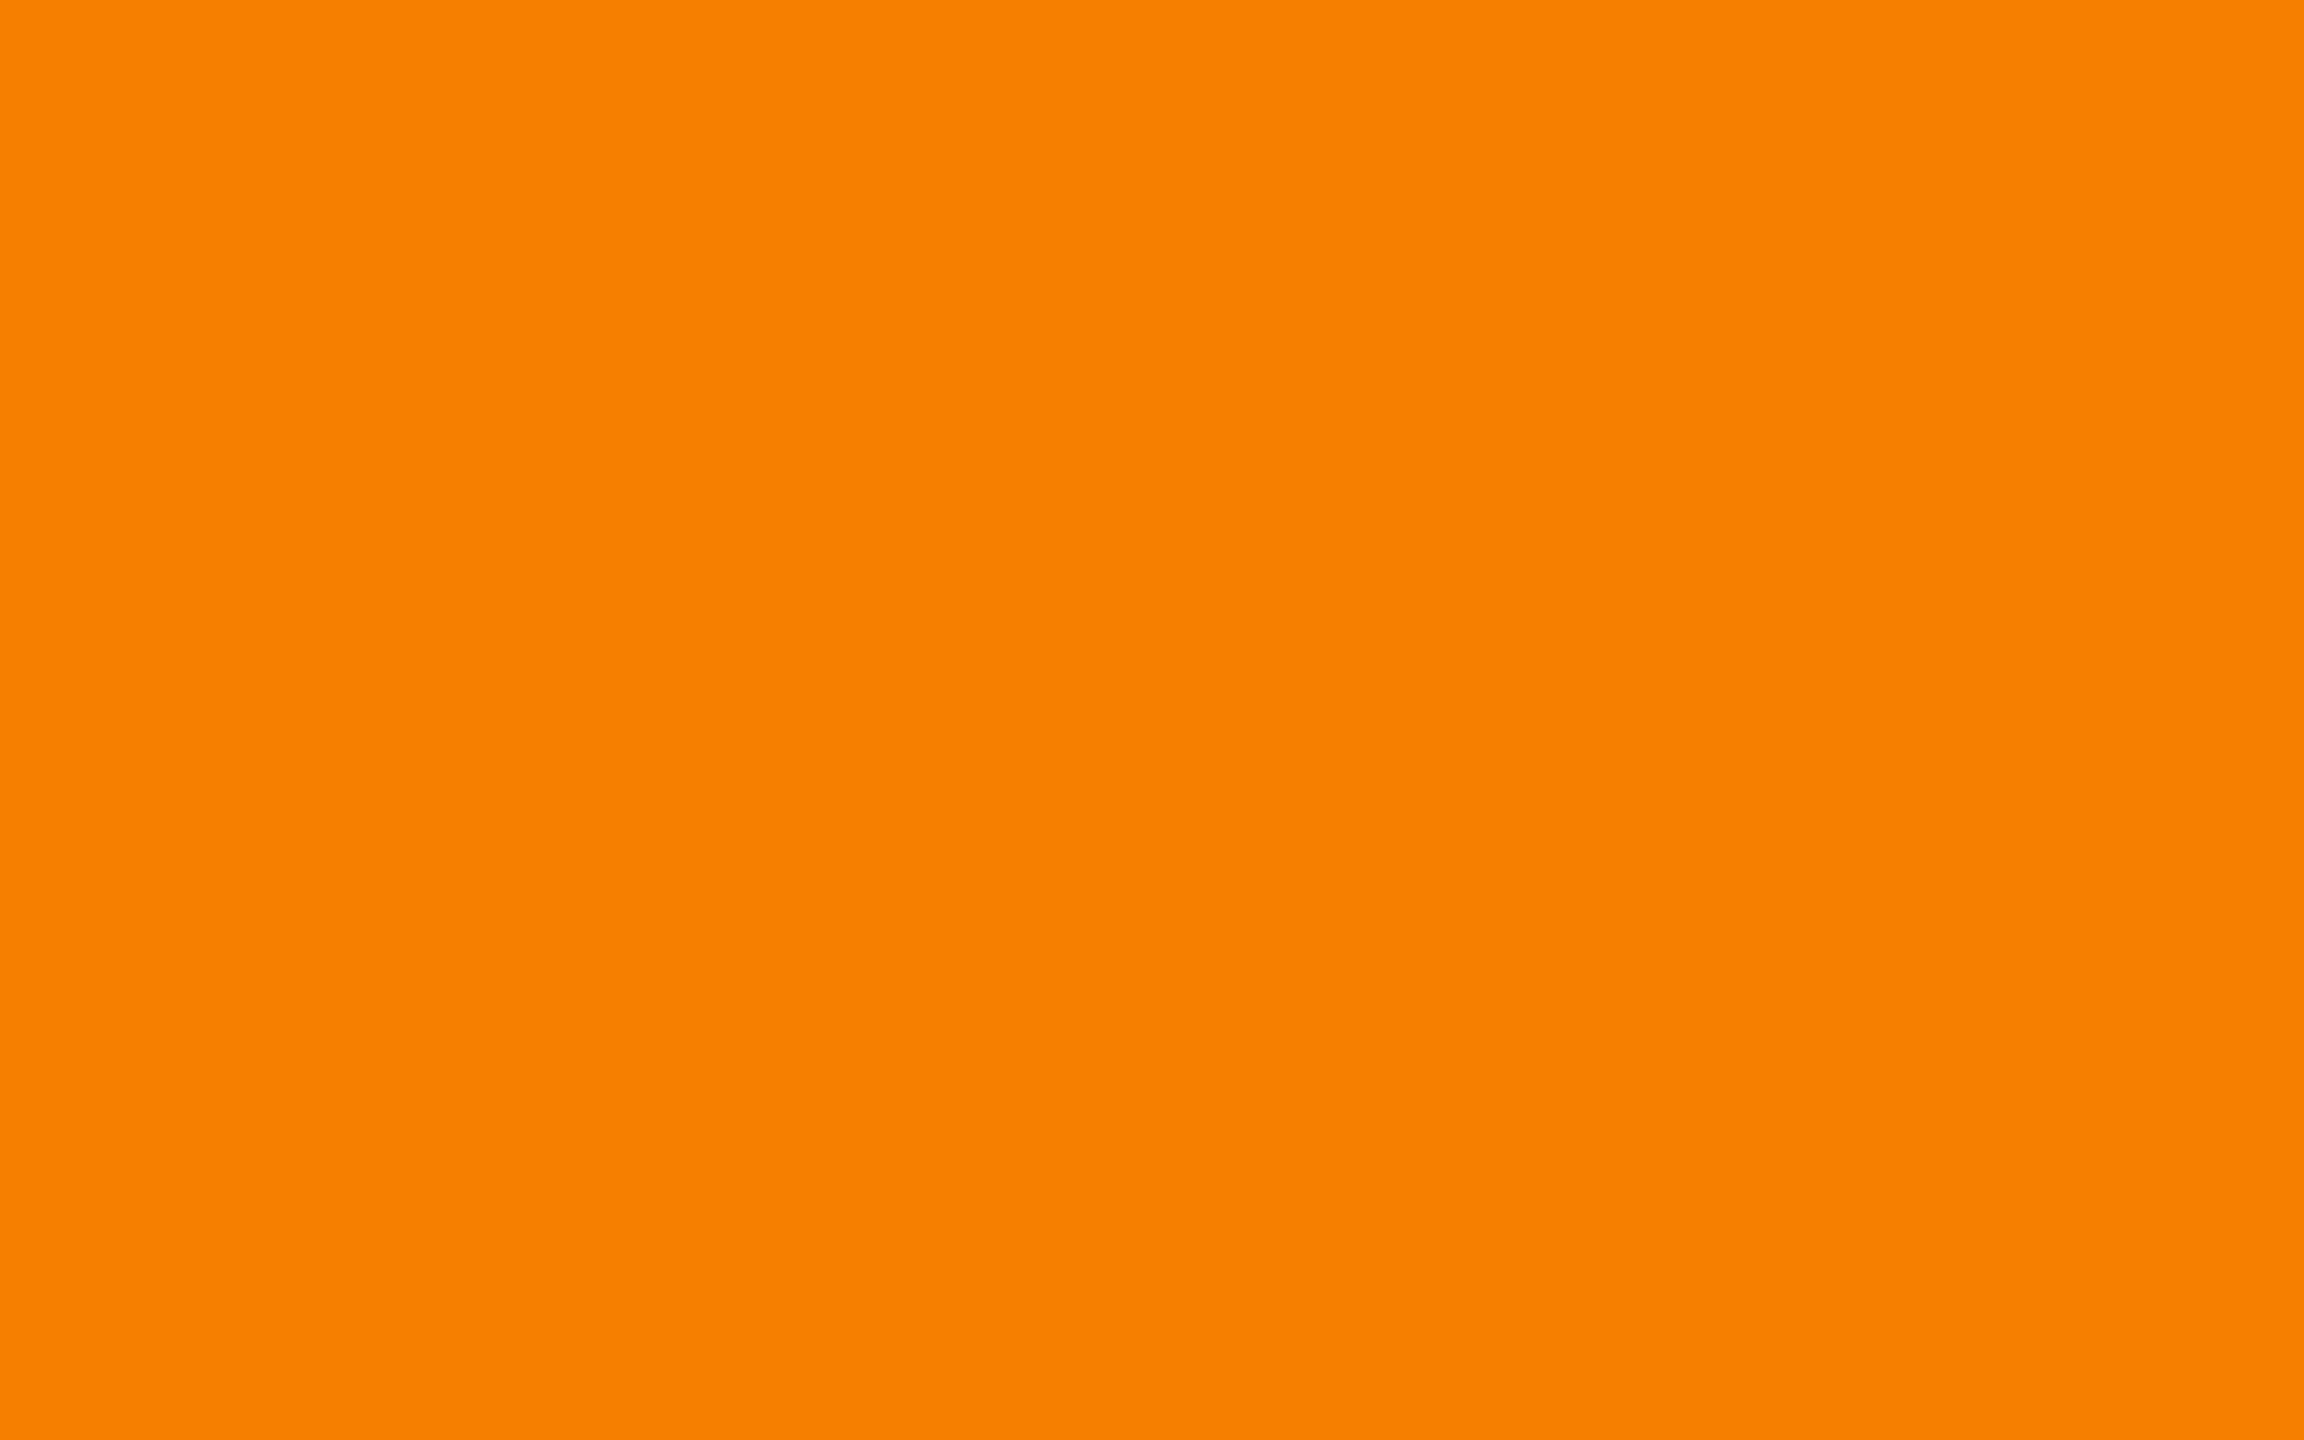 2304x1440 University Of Tennessee Orange Solid Color Background